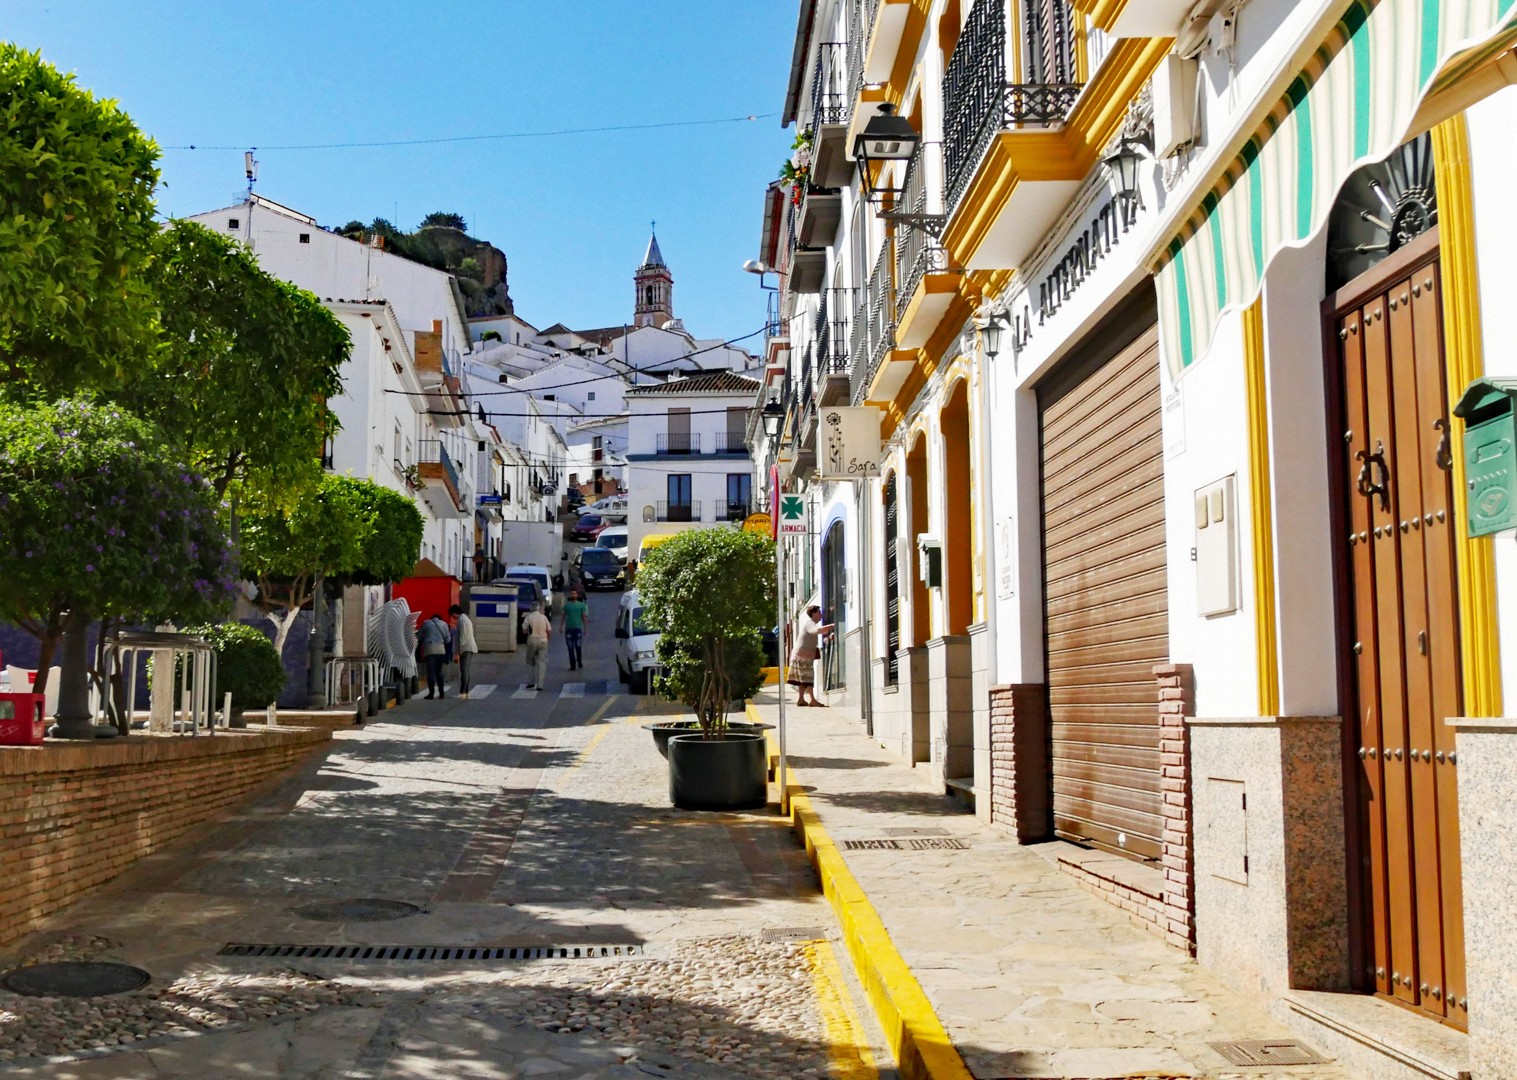 cobbled-street-ronda-road-cycling-trip.jpg - Spain - Basque Country to Andalucia - North to South - 16 Day - Guided Road Cycling Holiday - Road Cycling